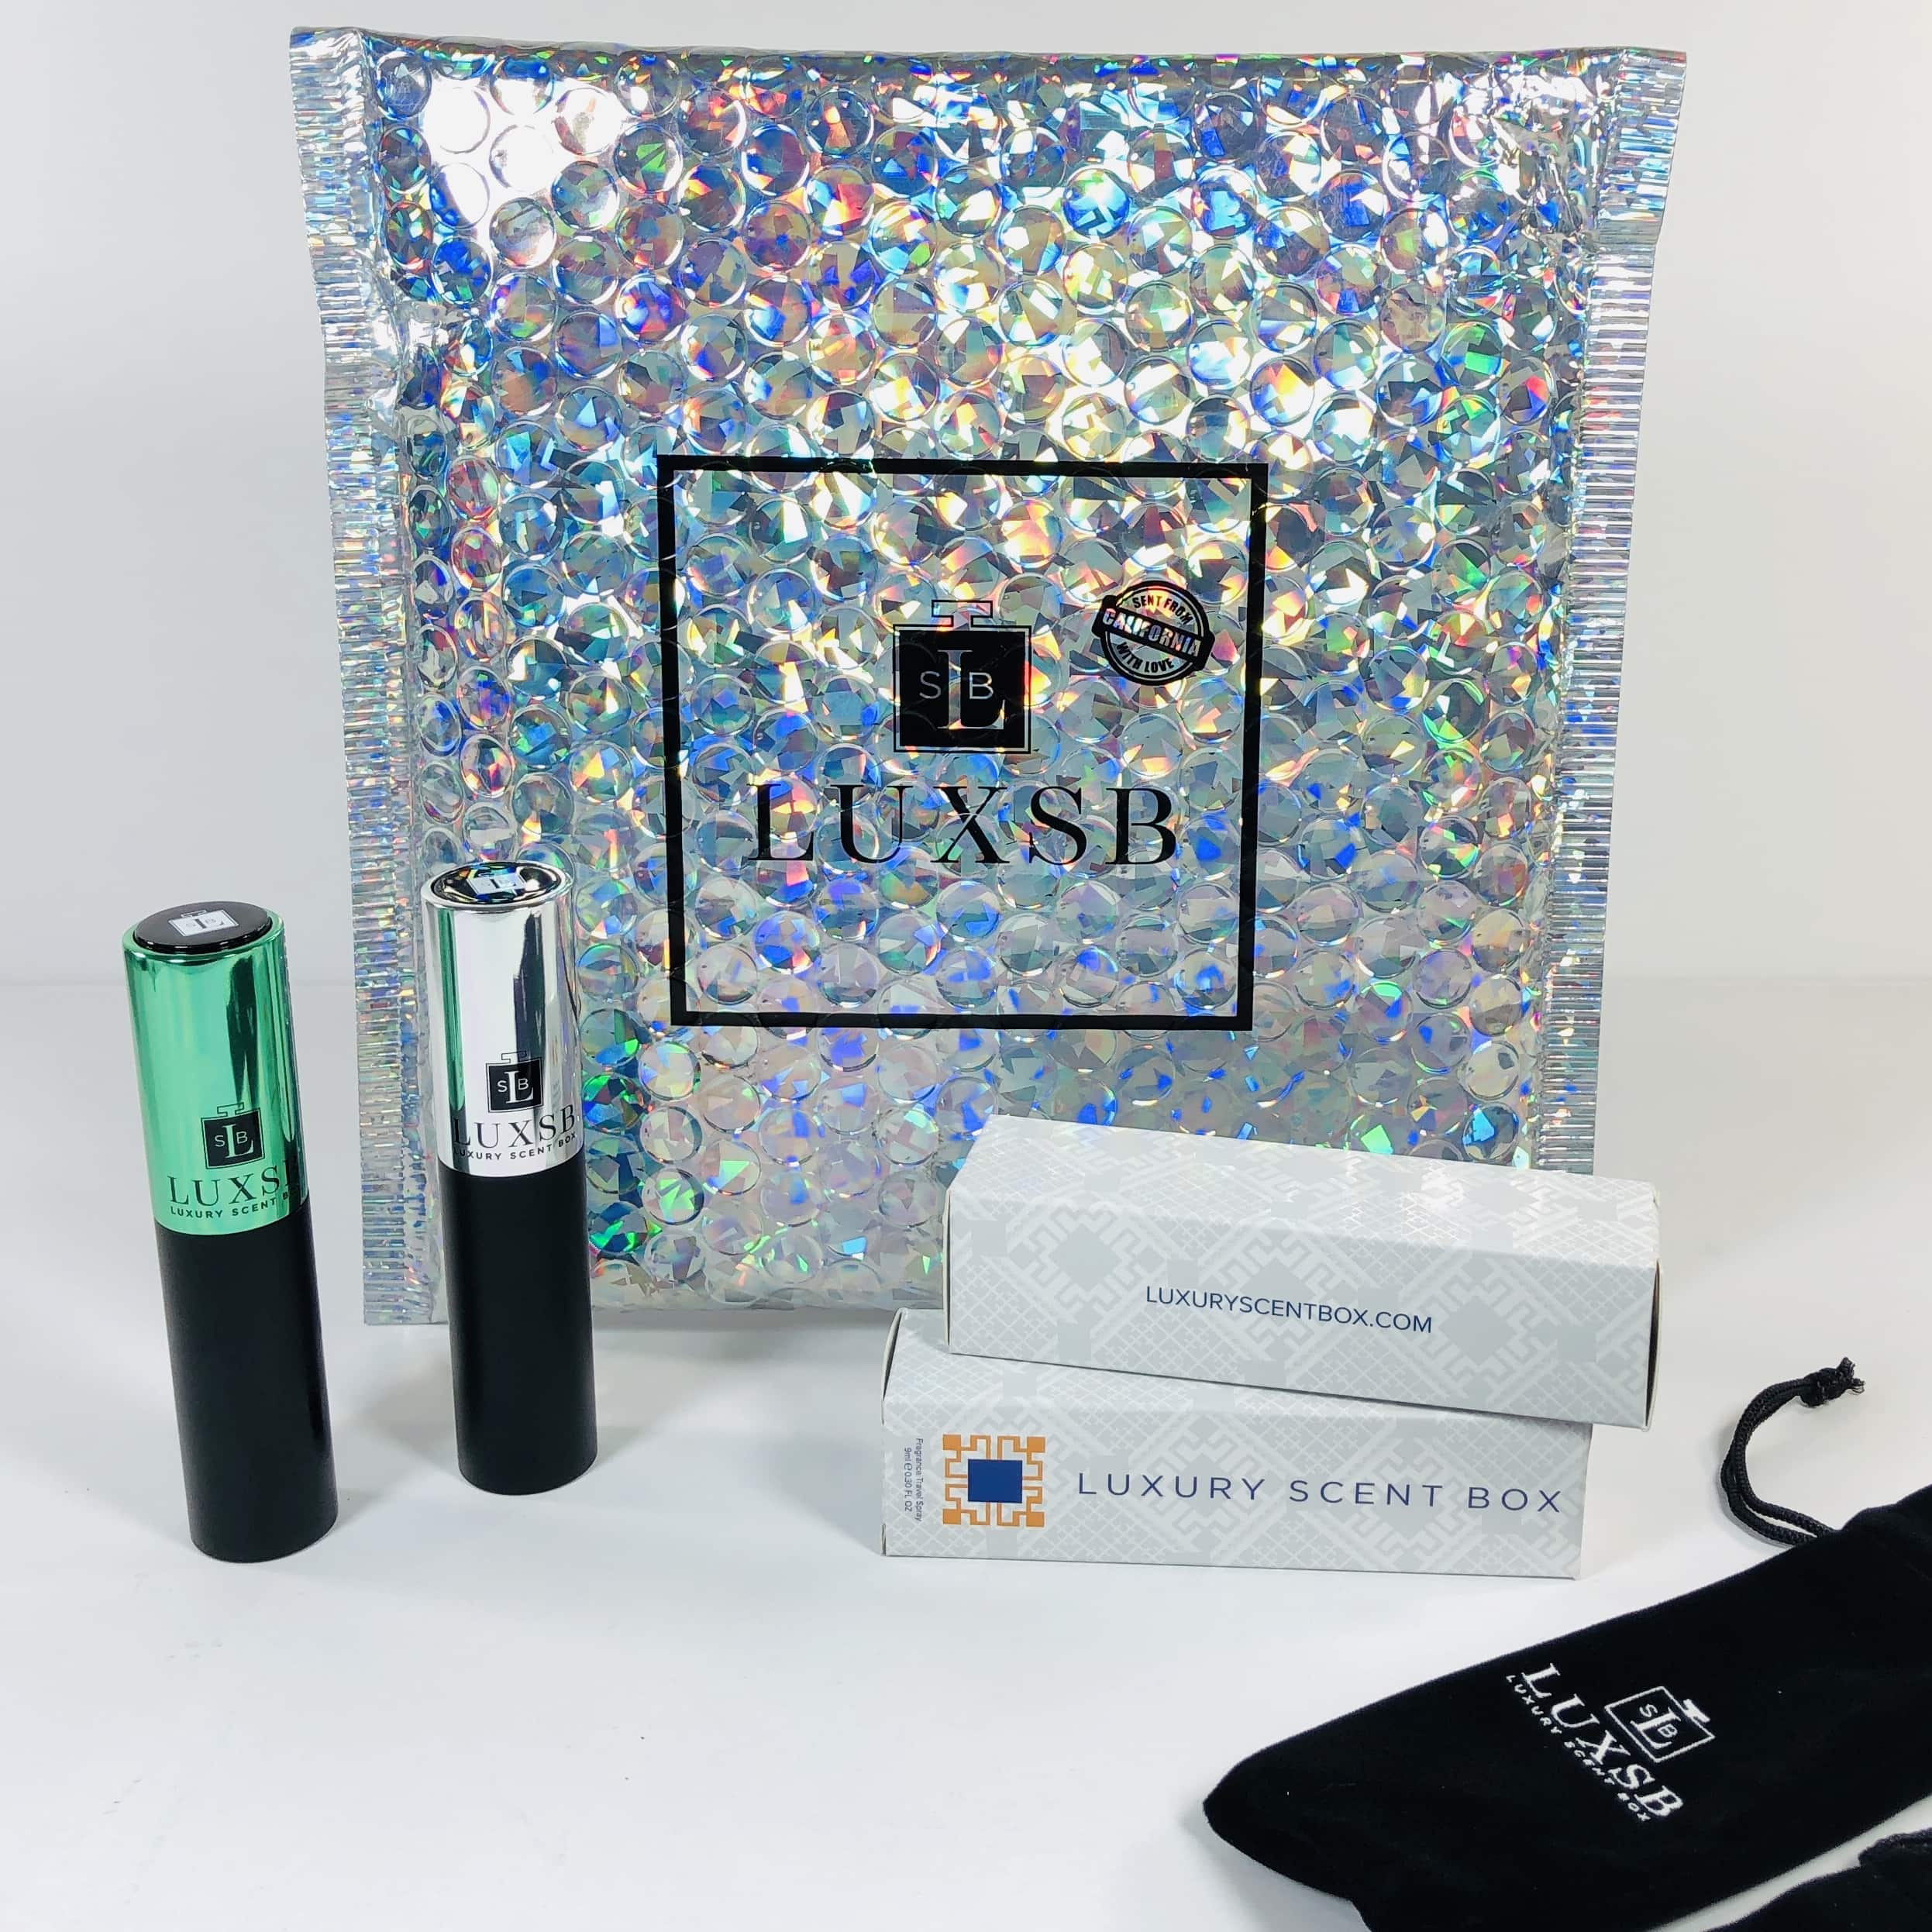 Luxury Scent Box Subscription Box Review + Coupon – August 2019